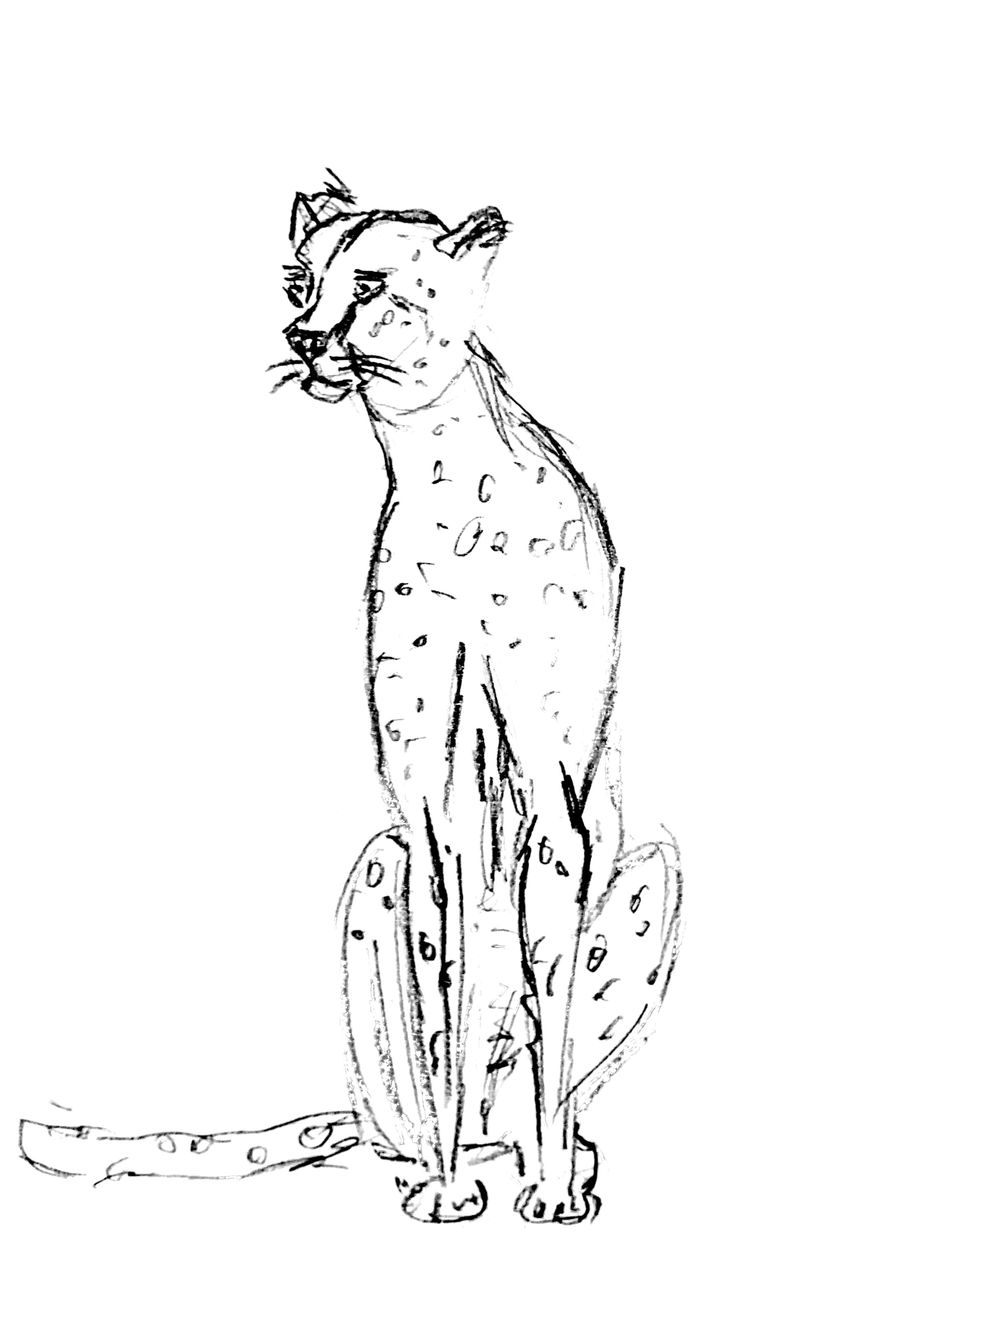 Quick Cheetah sketch - image 1 - student project